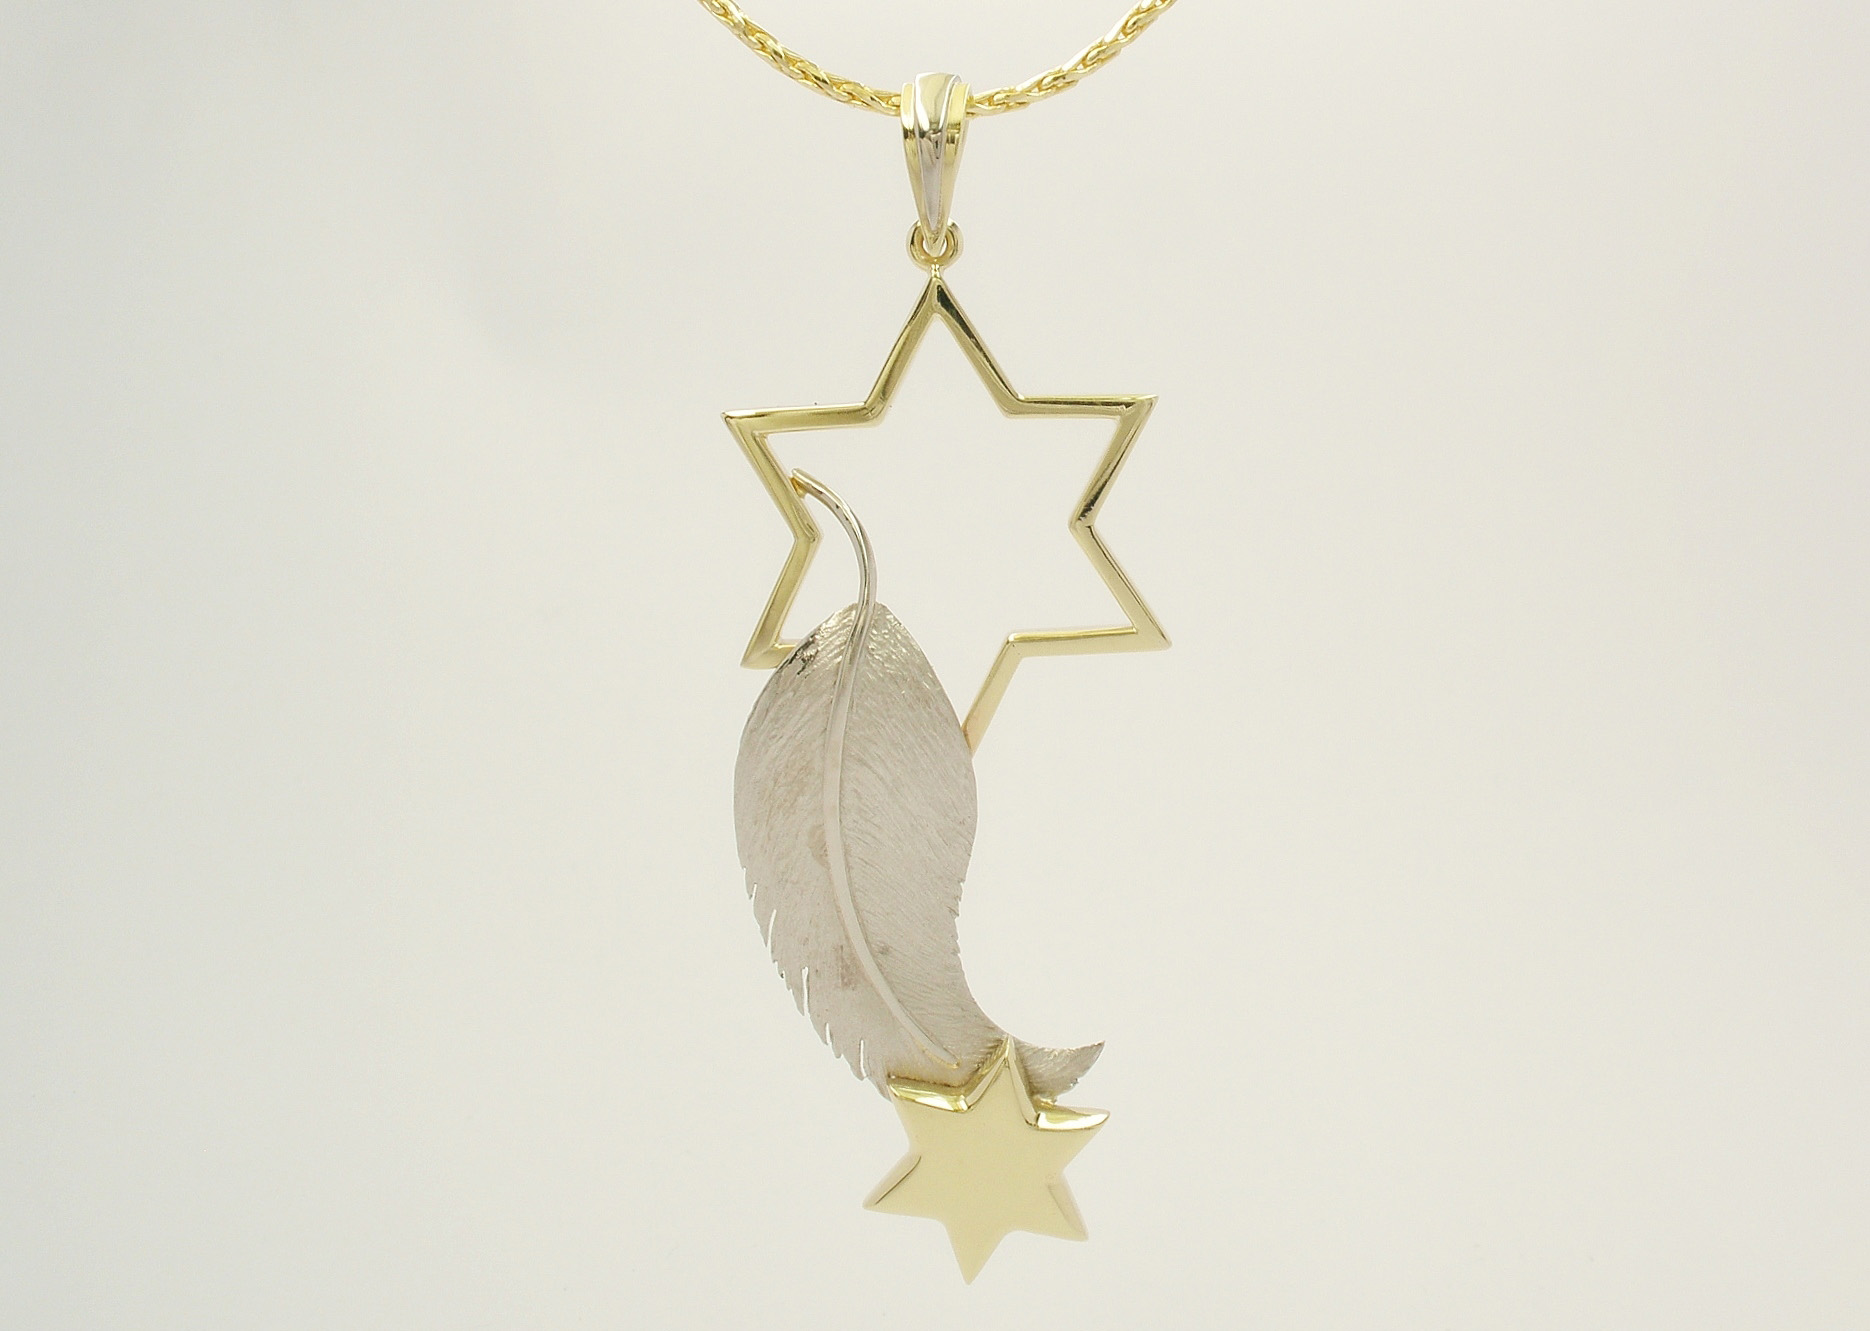 Maureen Cooper's Star & Feather Pendant by Alan P Fulton